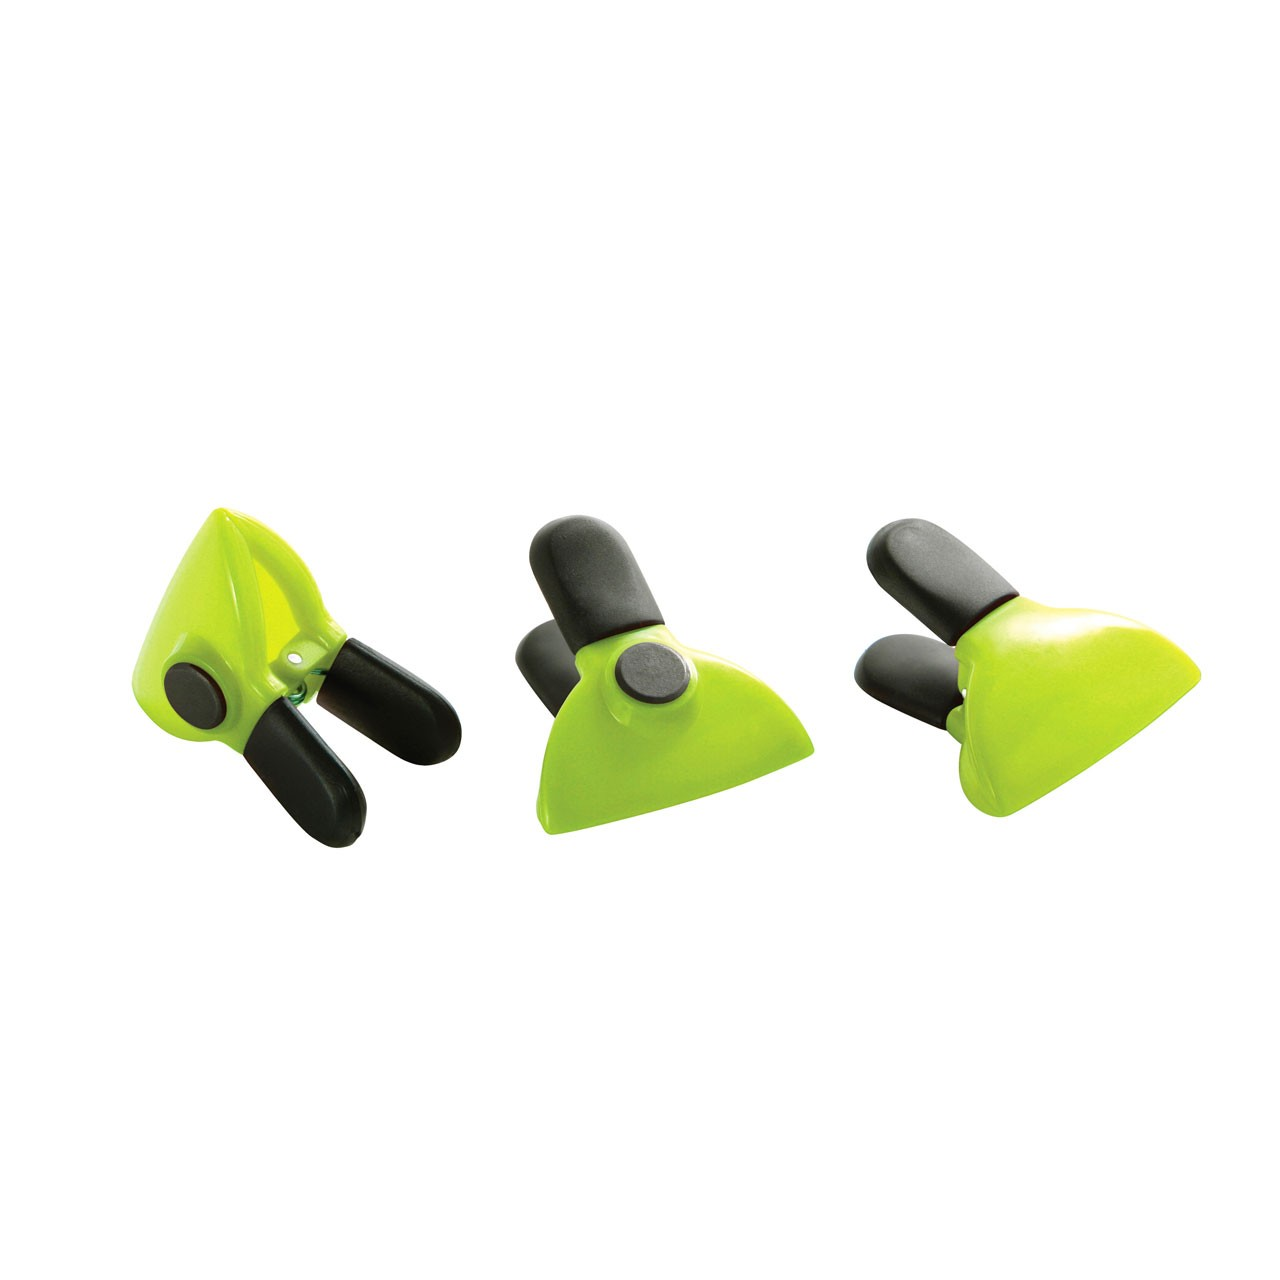 Magnetic Clips - Lime Green - Set of 3